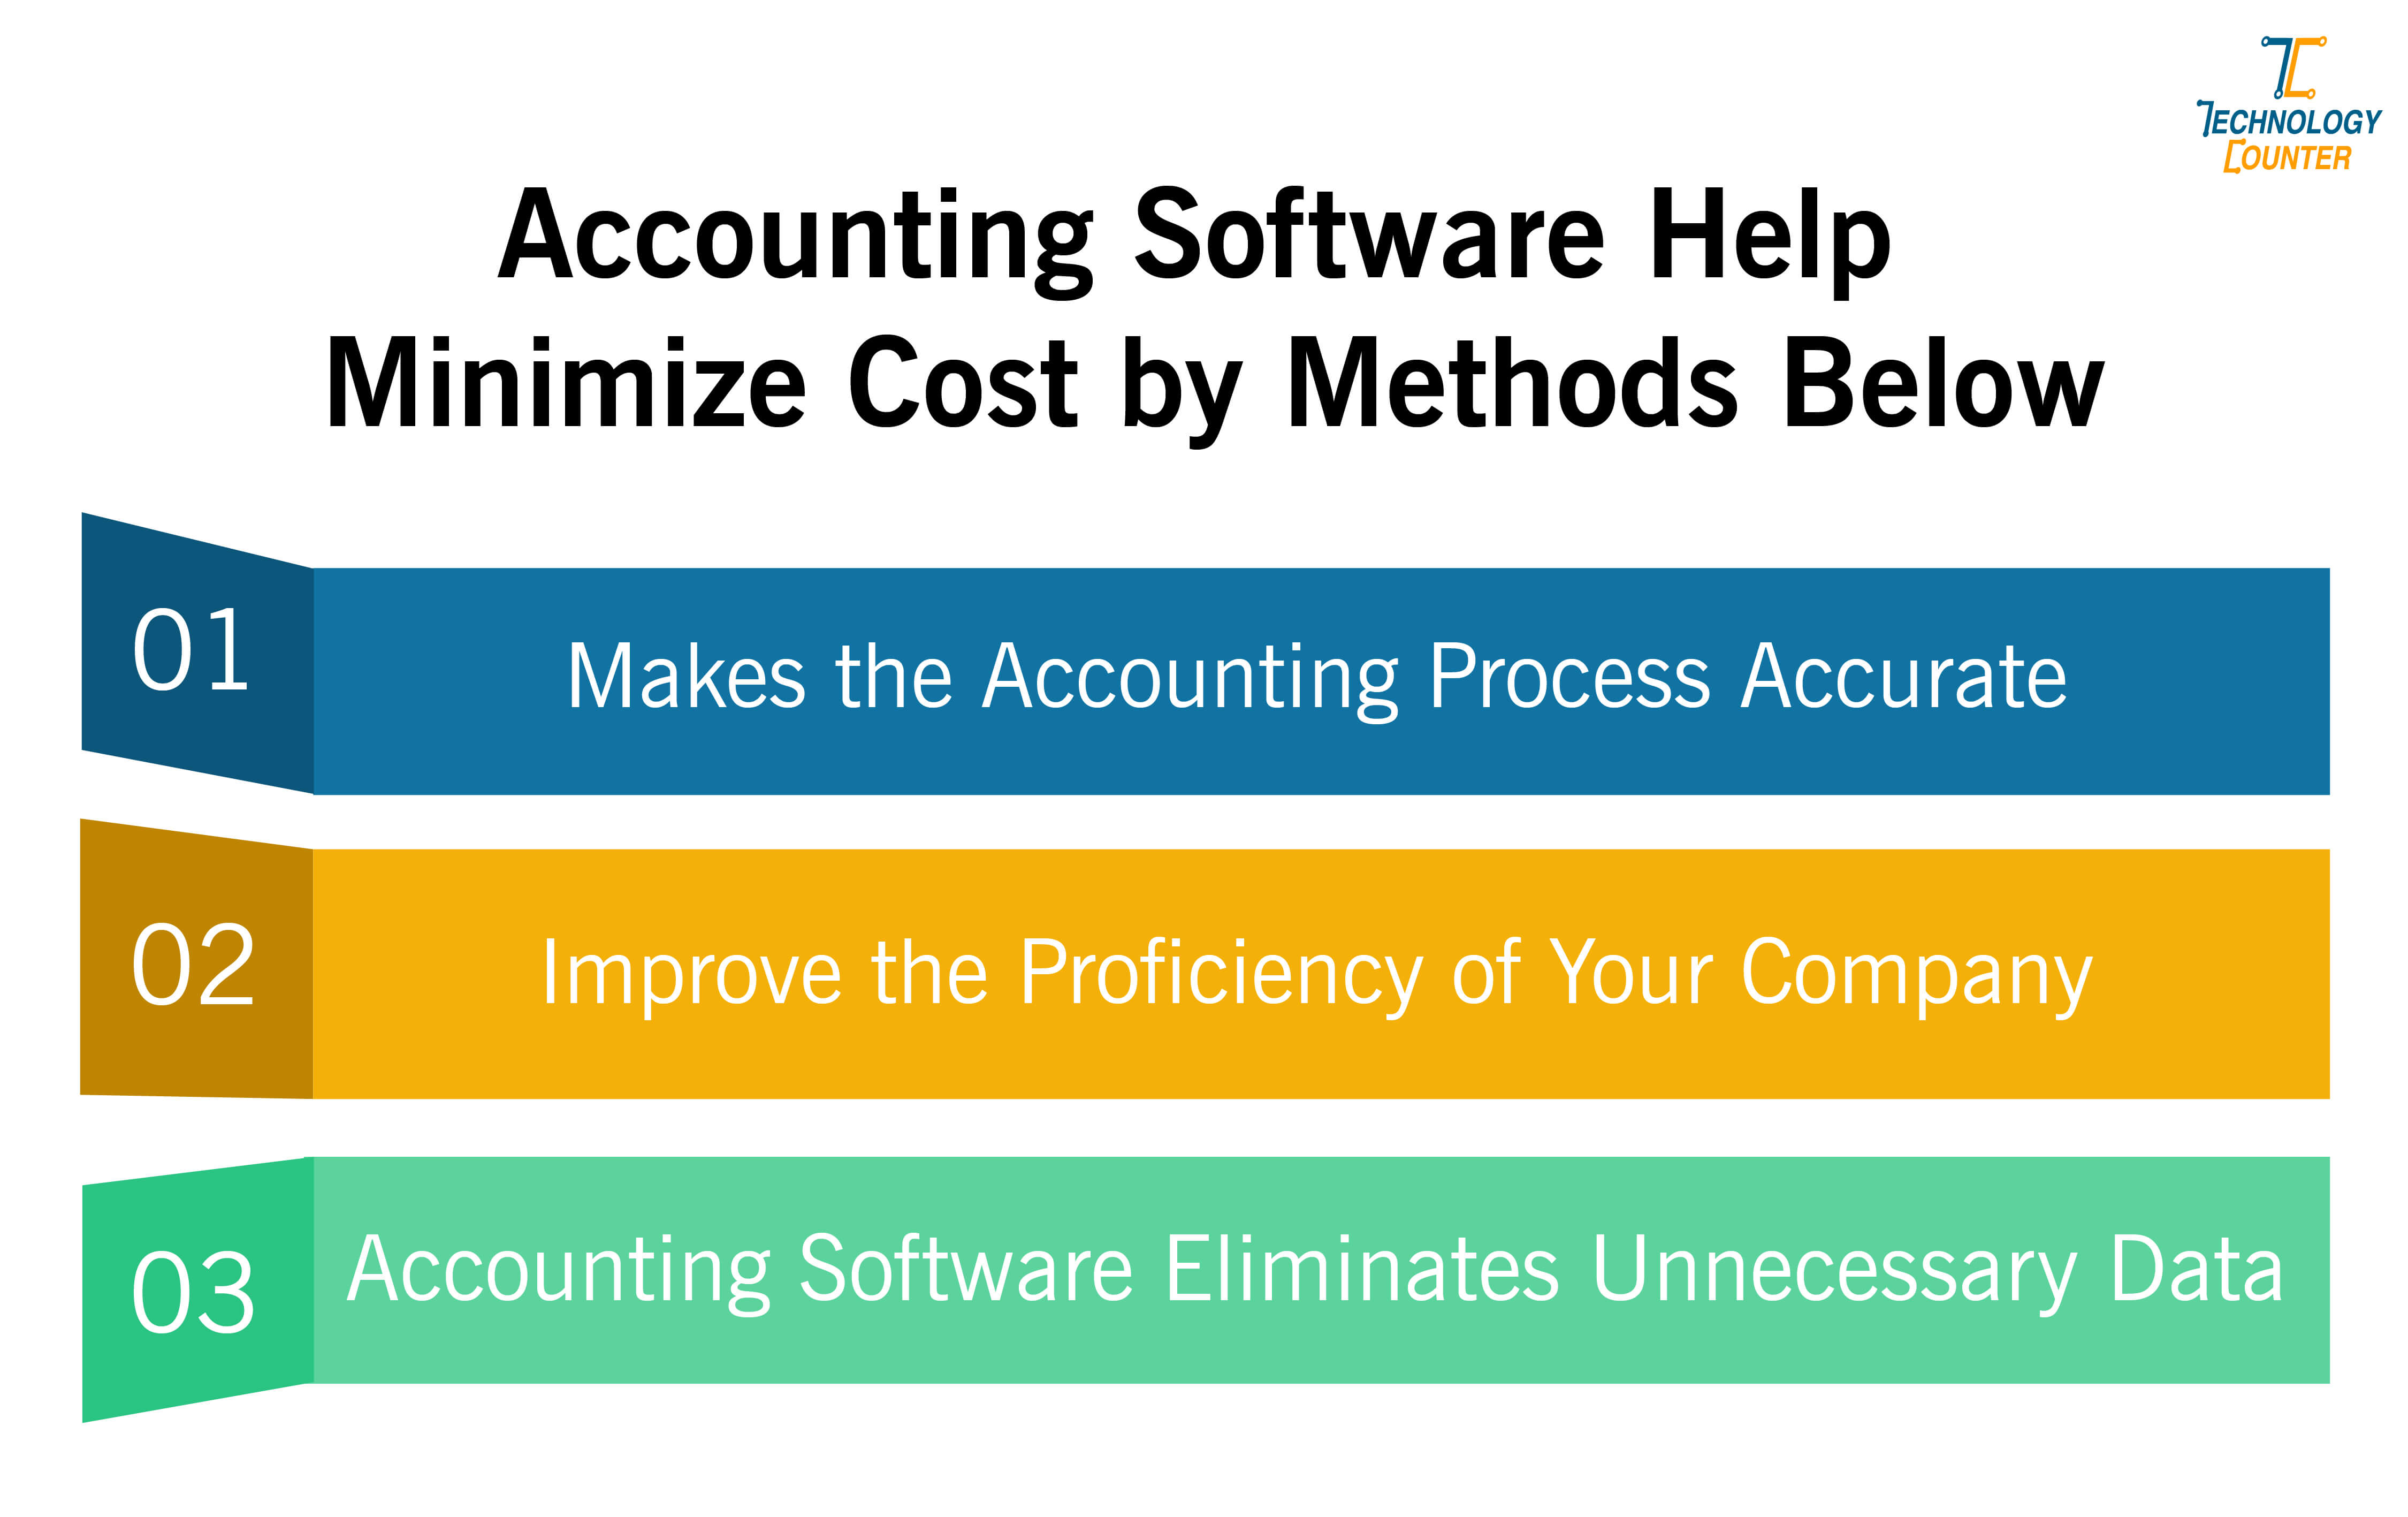 Accounting Software Help Minimize Cost by Methods below